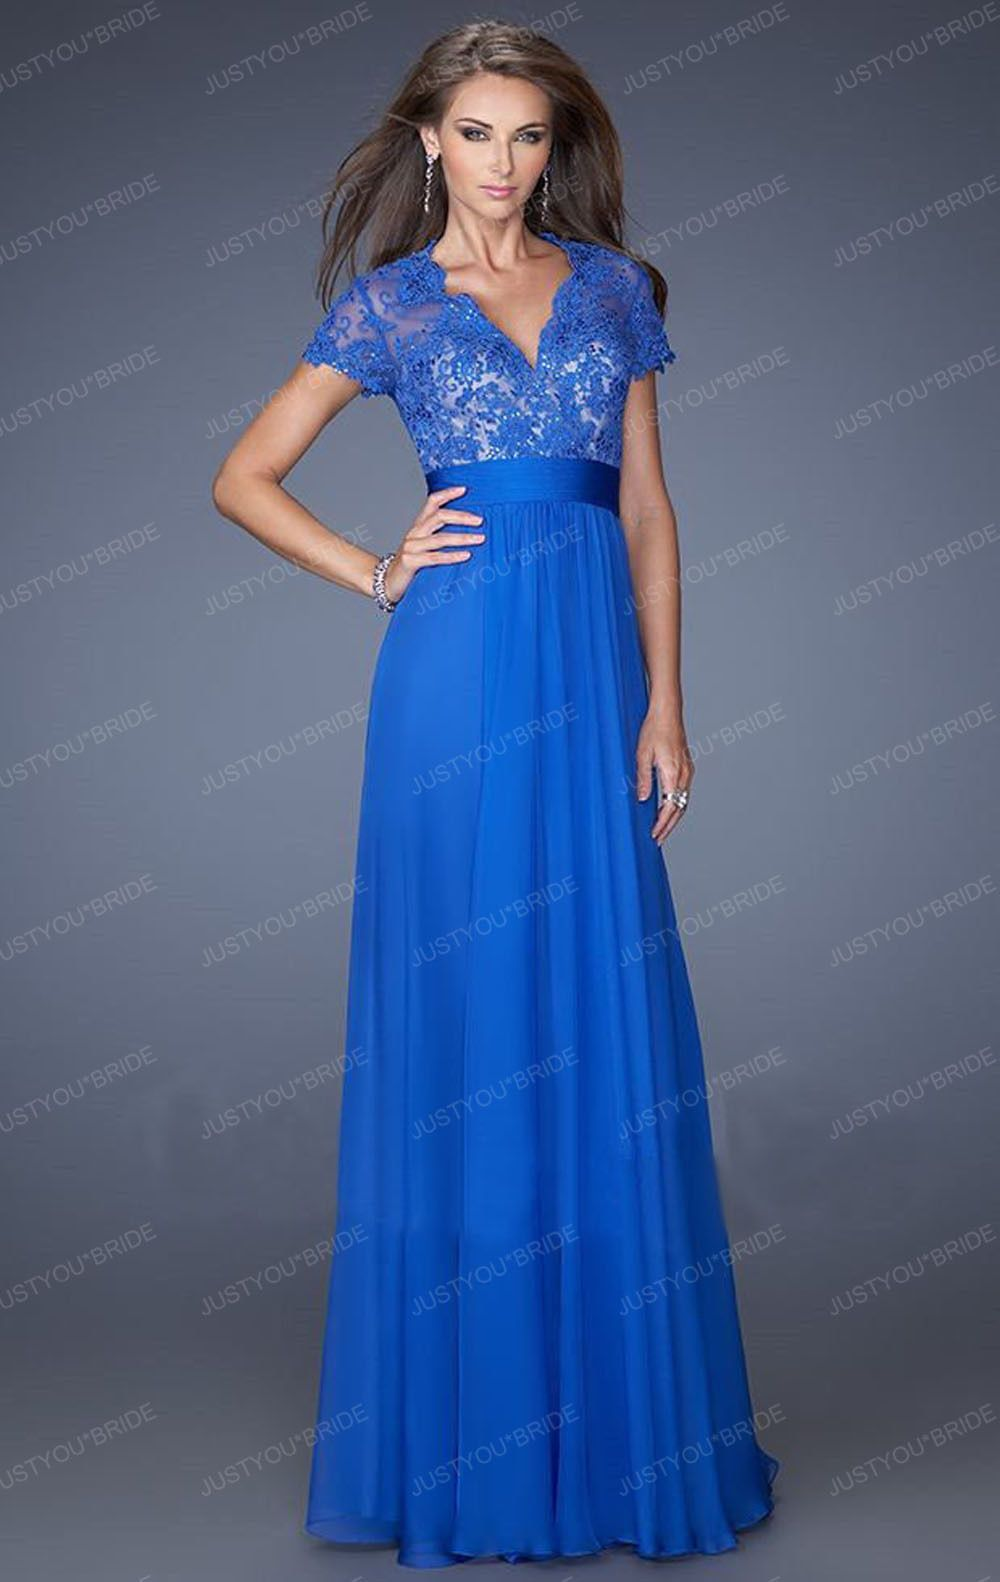 56431b01856 Sexy Long Chiffon Lace Evening Formal Party Cocktail Bridesmaid Prom Gown  Dress